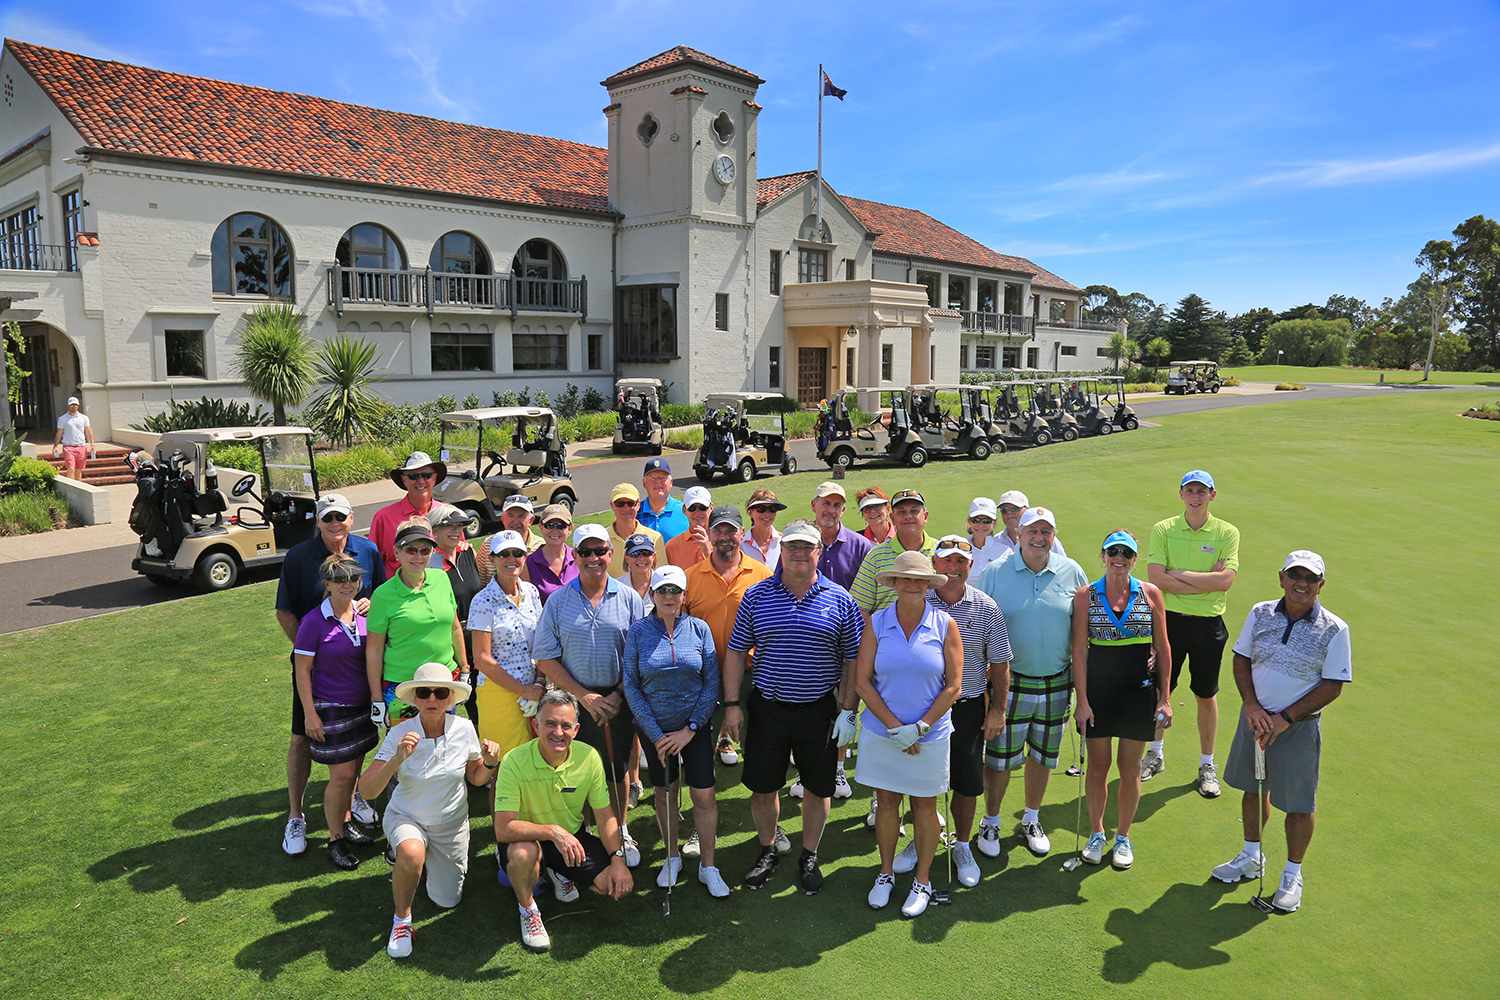 PerryGolf guests gathered at Yarra Yarra Golf Club, Australia during our 2016 Australasia Golf Cruise - Photo by Gary Lisbon - PerryGolf.com